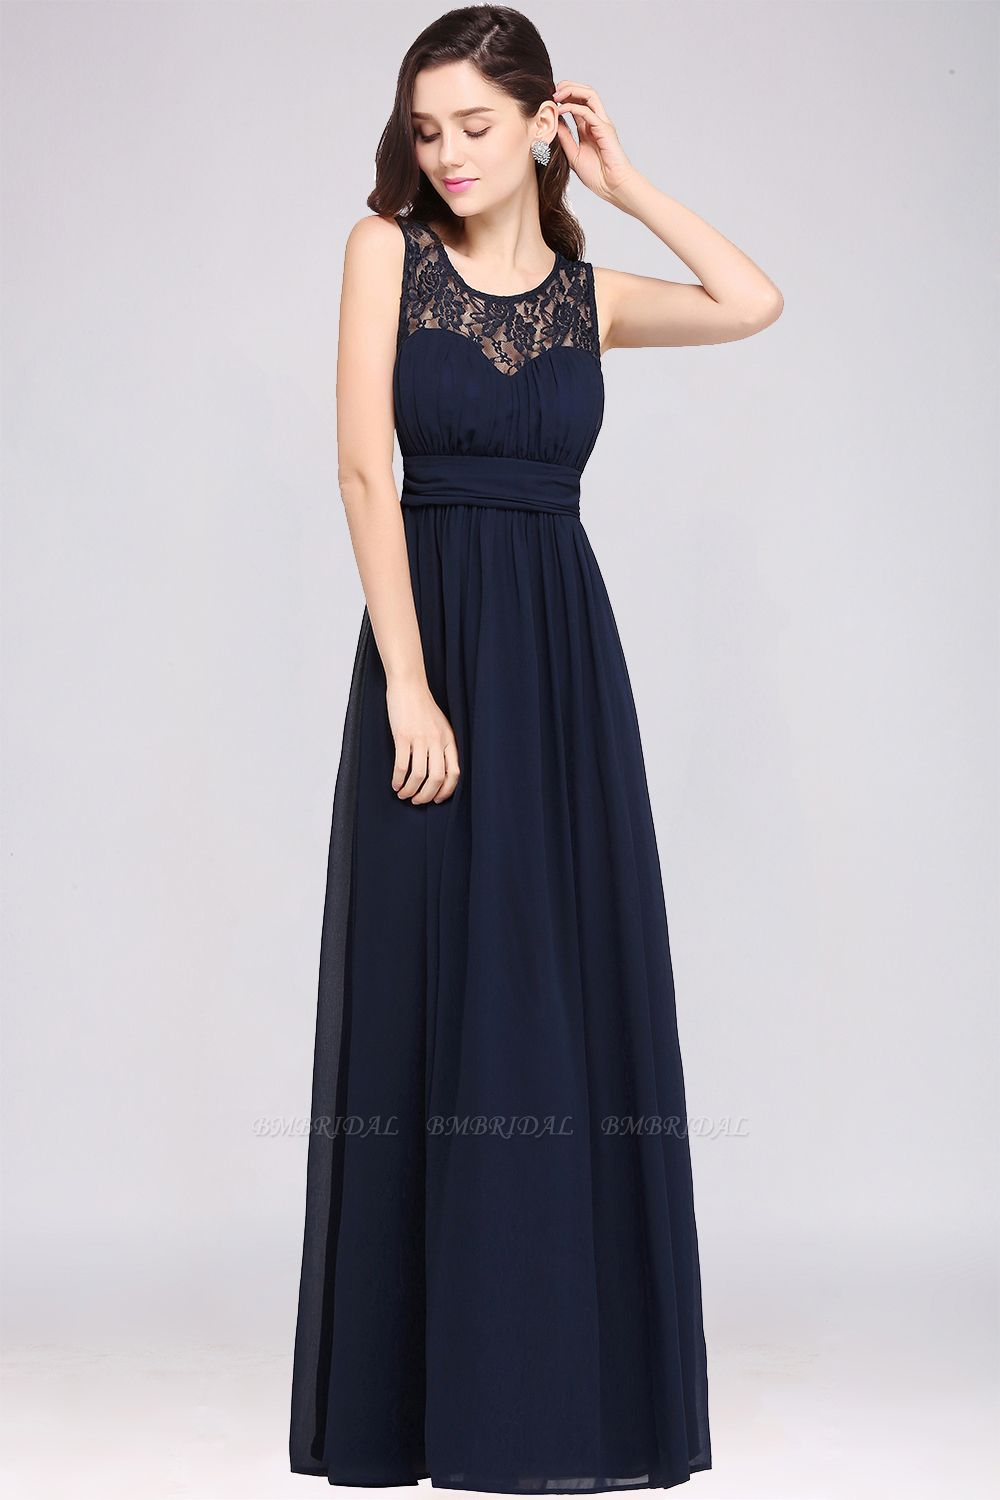 Elegant Lace Chiffon Affordable Long Navy Bridesmaid Dresses In Stock